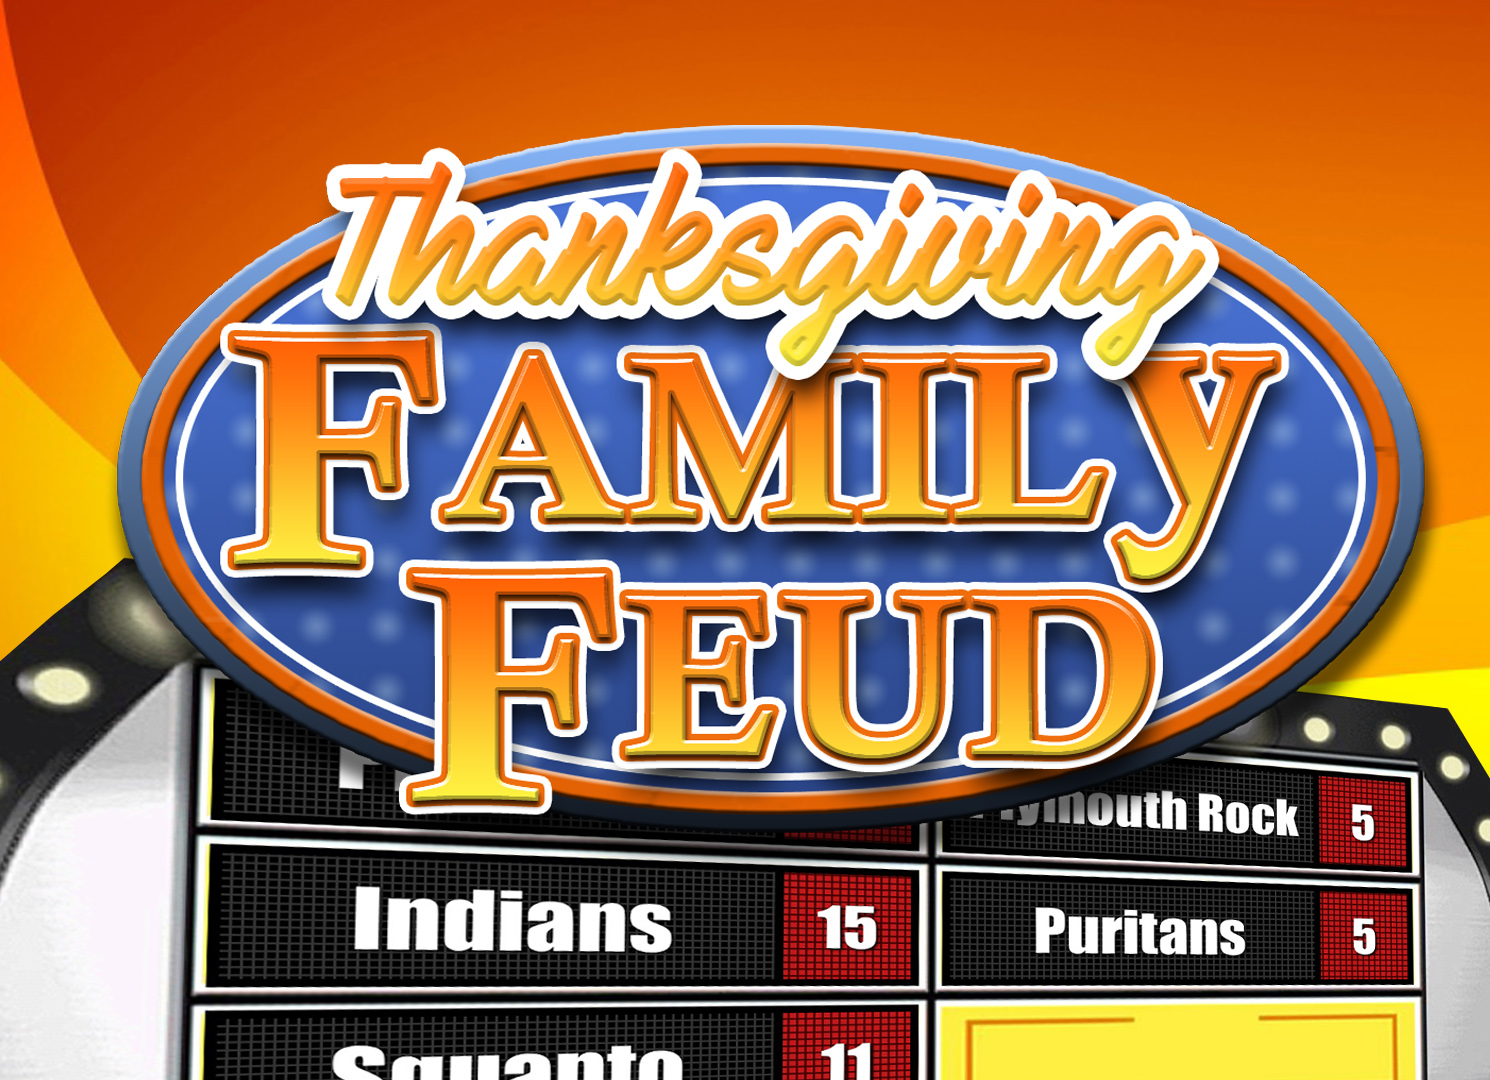 Thanksgiving Family Feud Trivia Powerpoint Game - Mac and PC Compatible